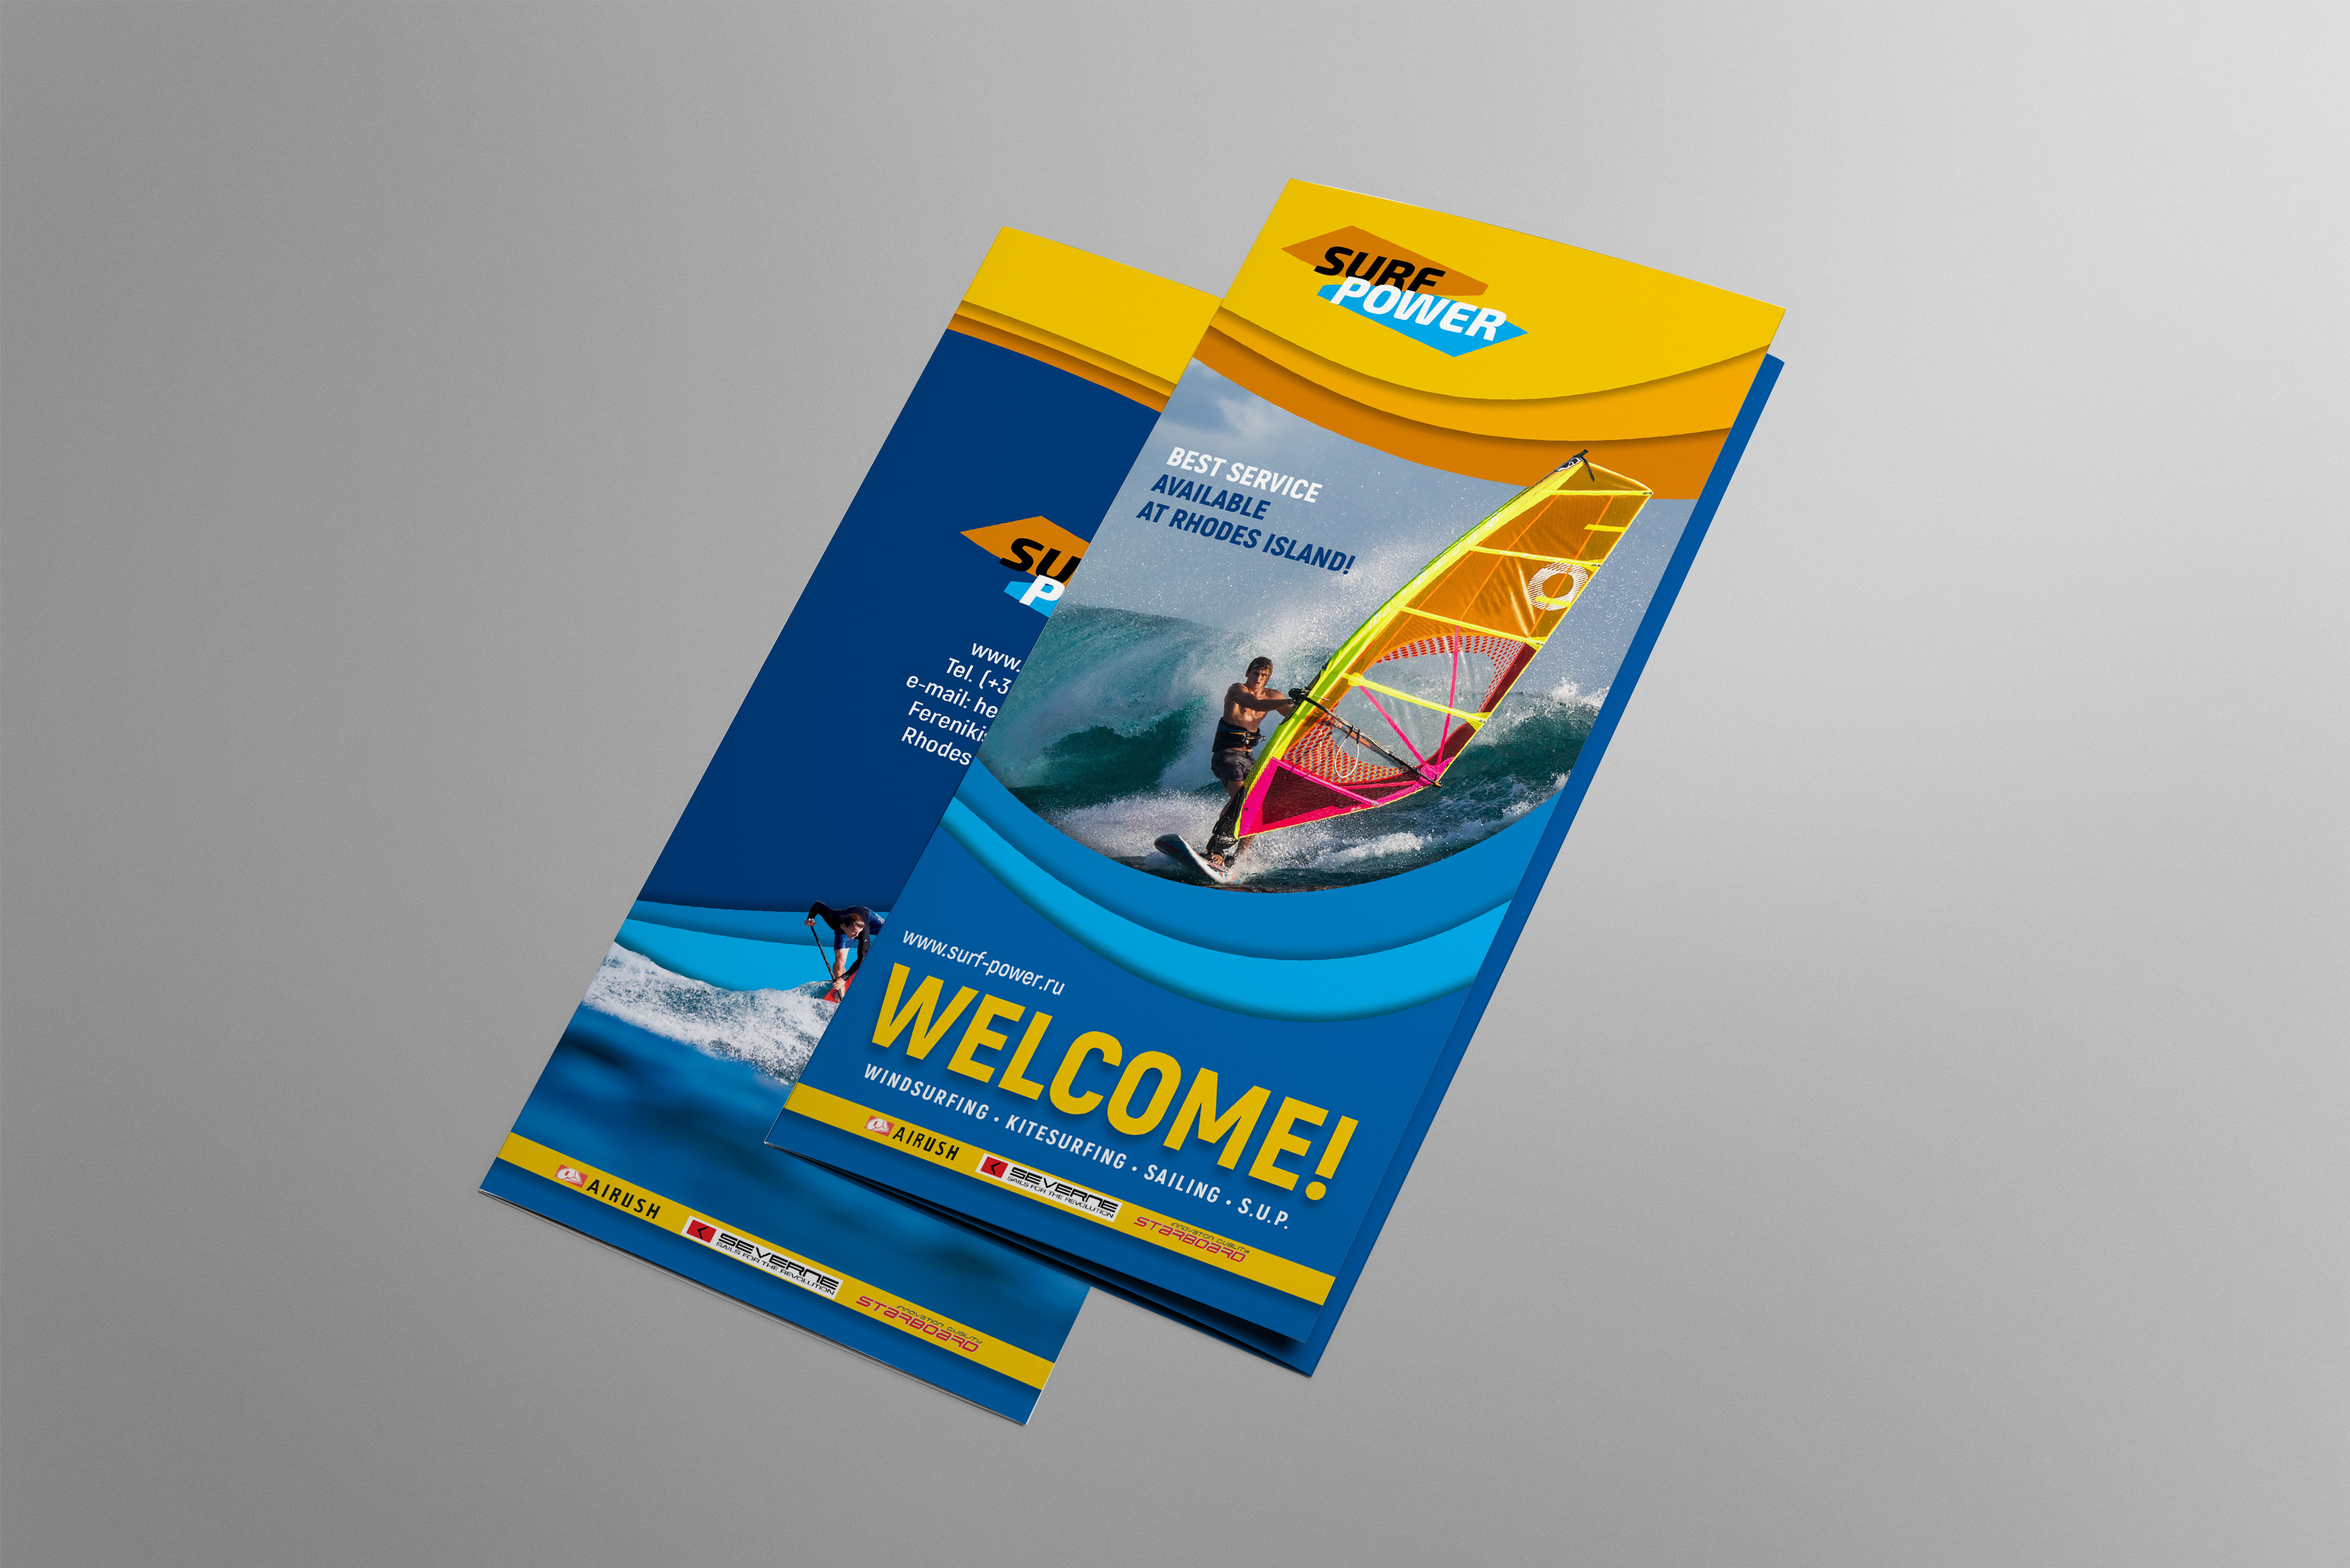 0196_3D_surfpower_booklet_297_mm_210_mm_v1_3_1